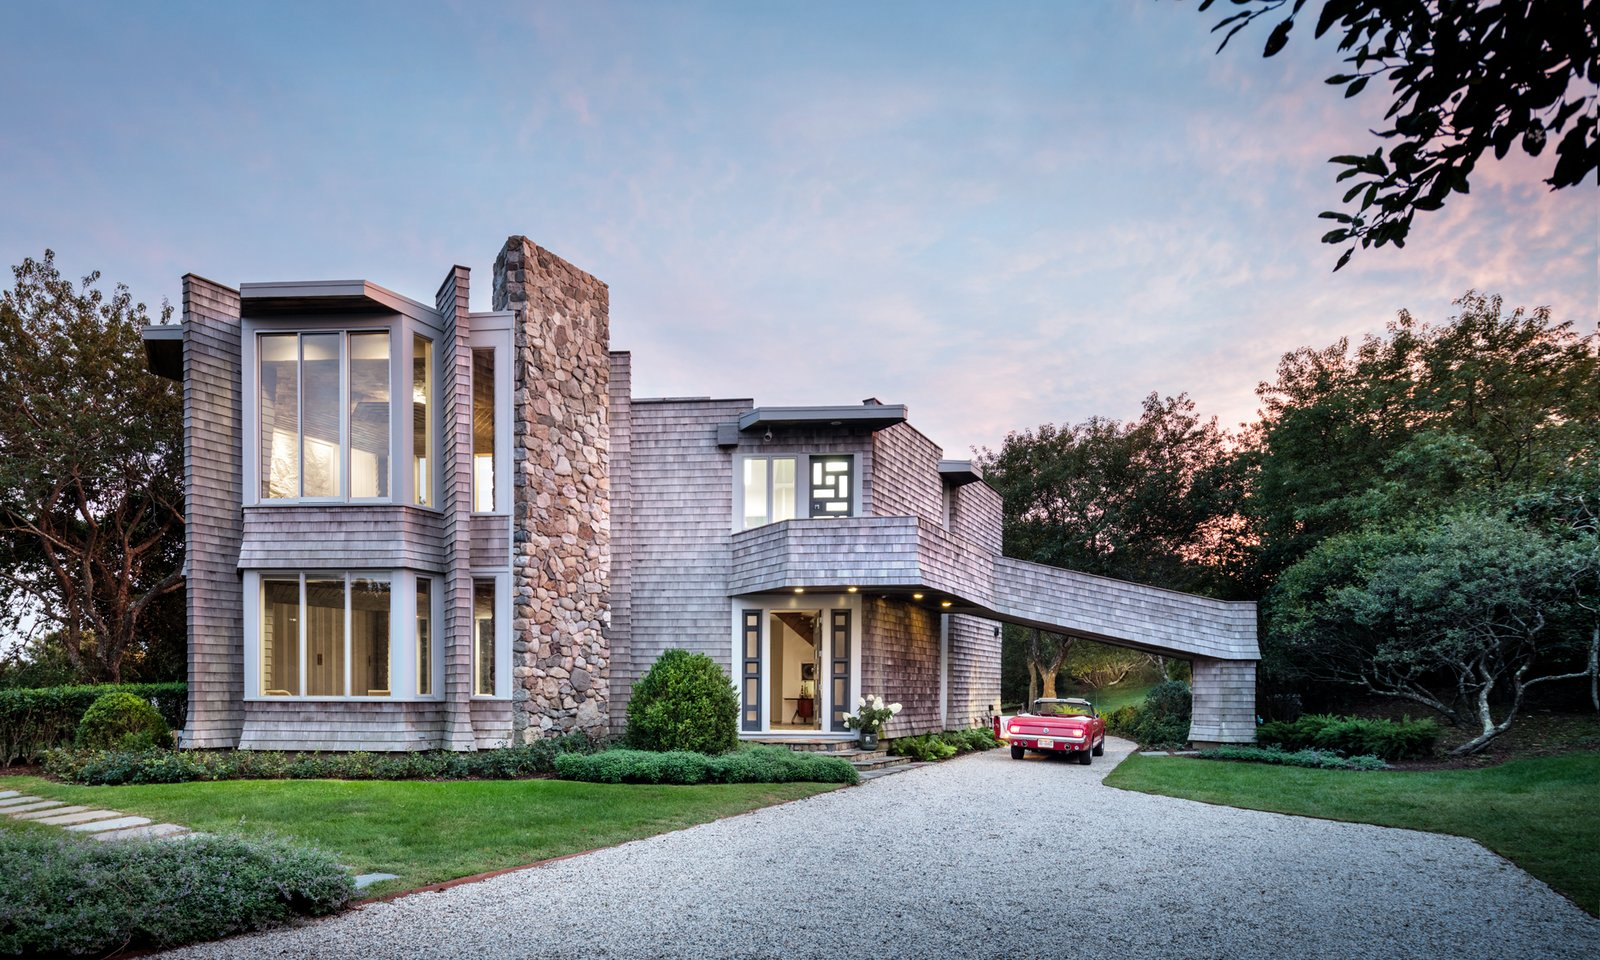 Located on 3.5 acres, the four-bedroom, three-and-a-half-bath home rests on top of a hill and is nestled up against the Montauk Point State Park.